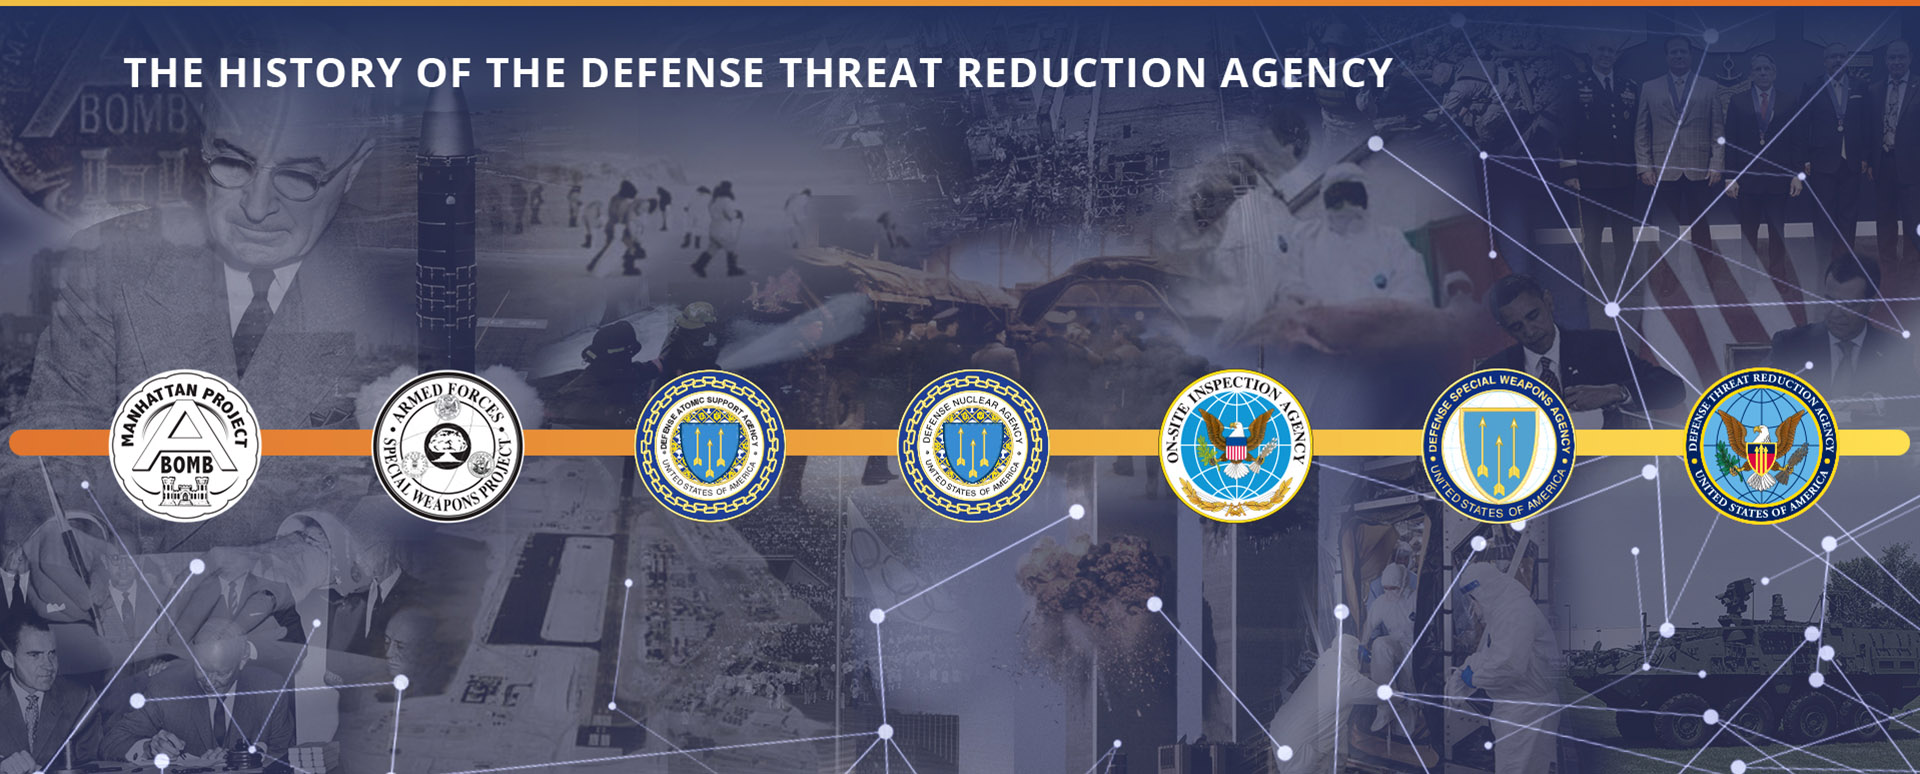 THE HISTORY OF THE DEFENSE THREAT REDUCTION AGENCY